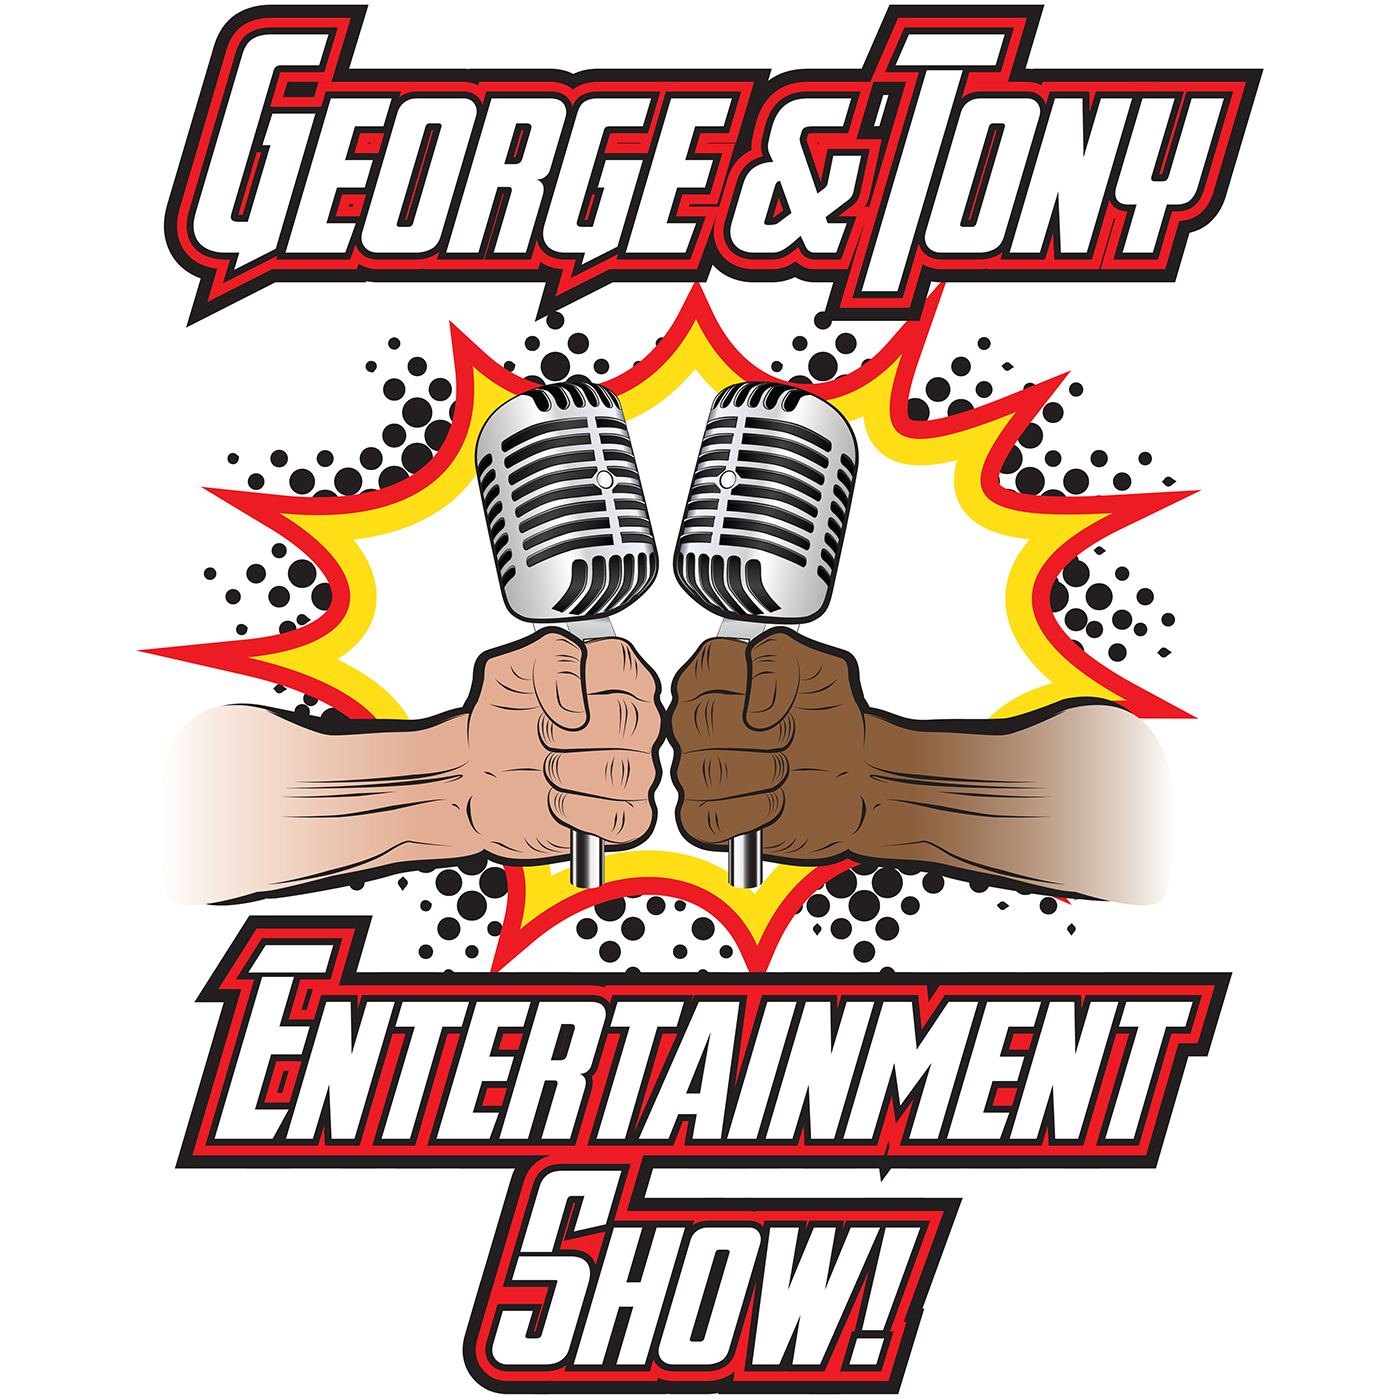 George and Tony Entertainment Show #72